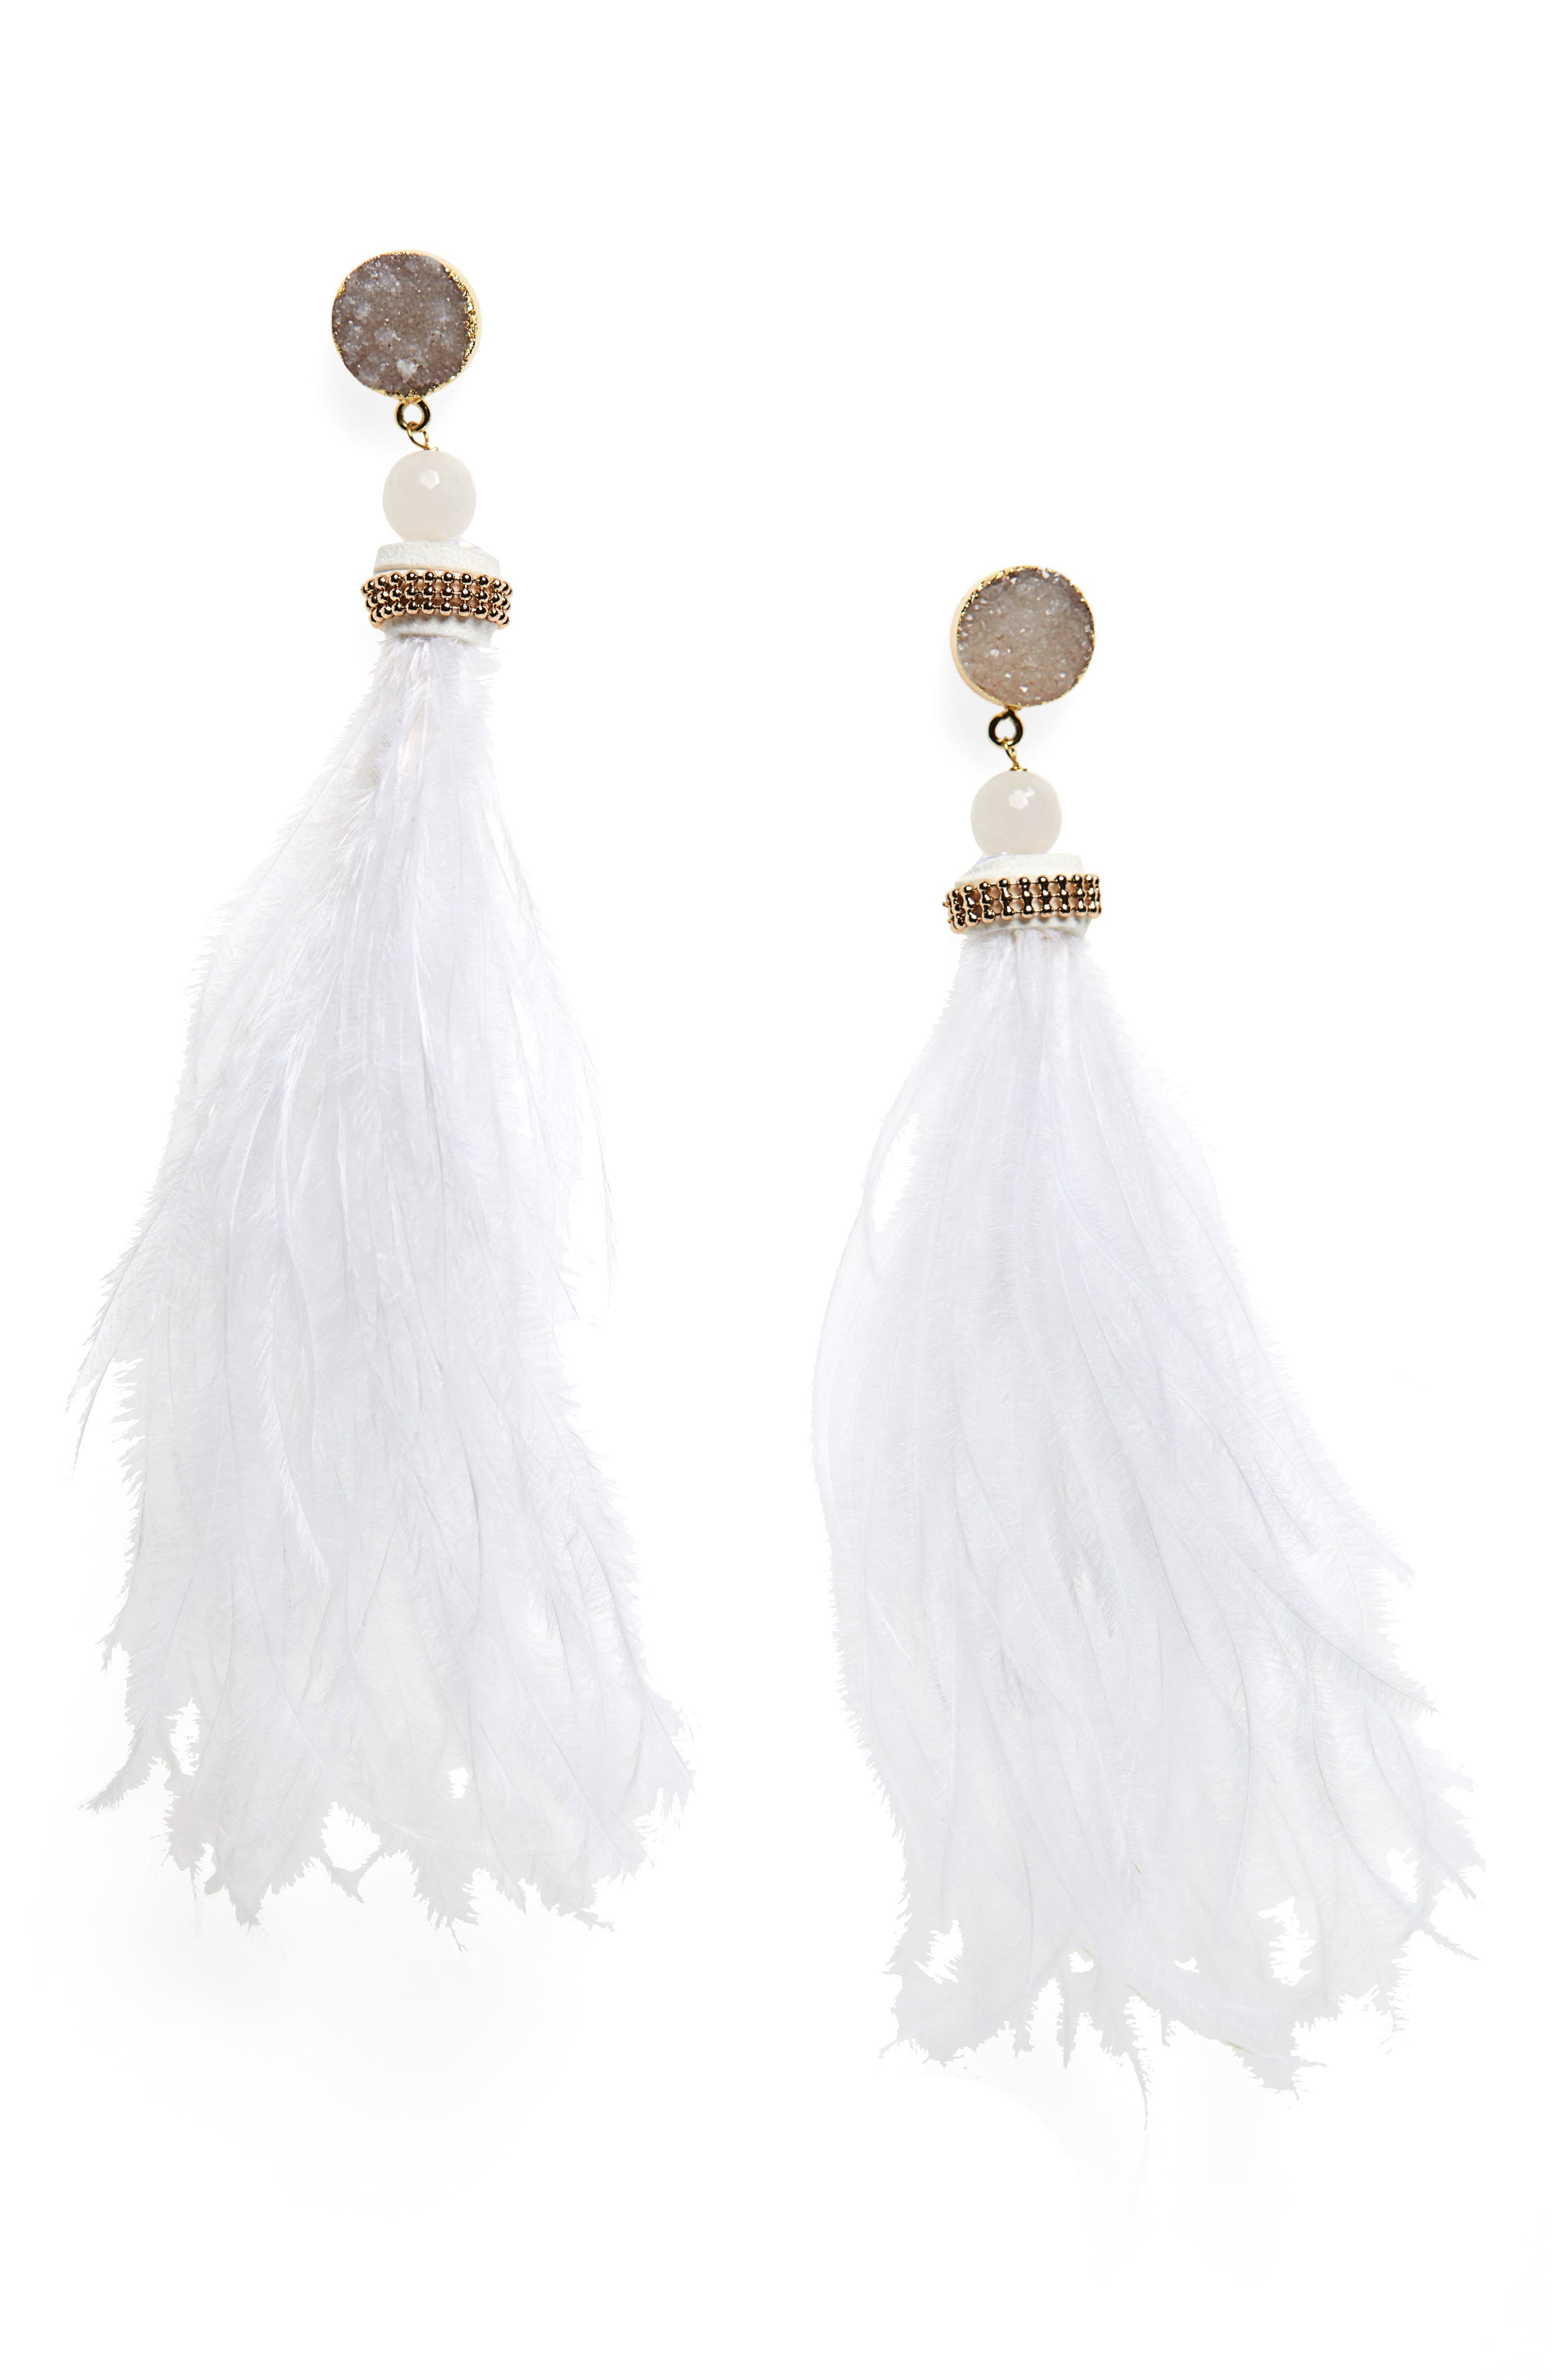 Stone & Feather Statement Earrings,                             Main thumbnail 1, color,                             100